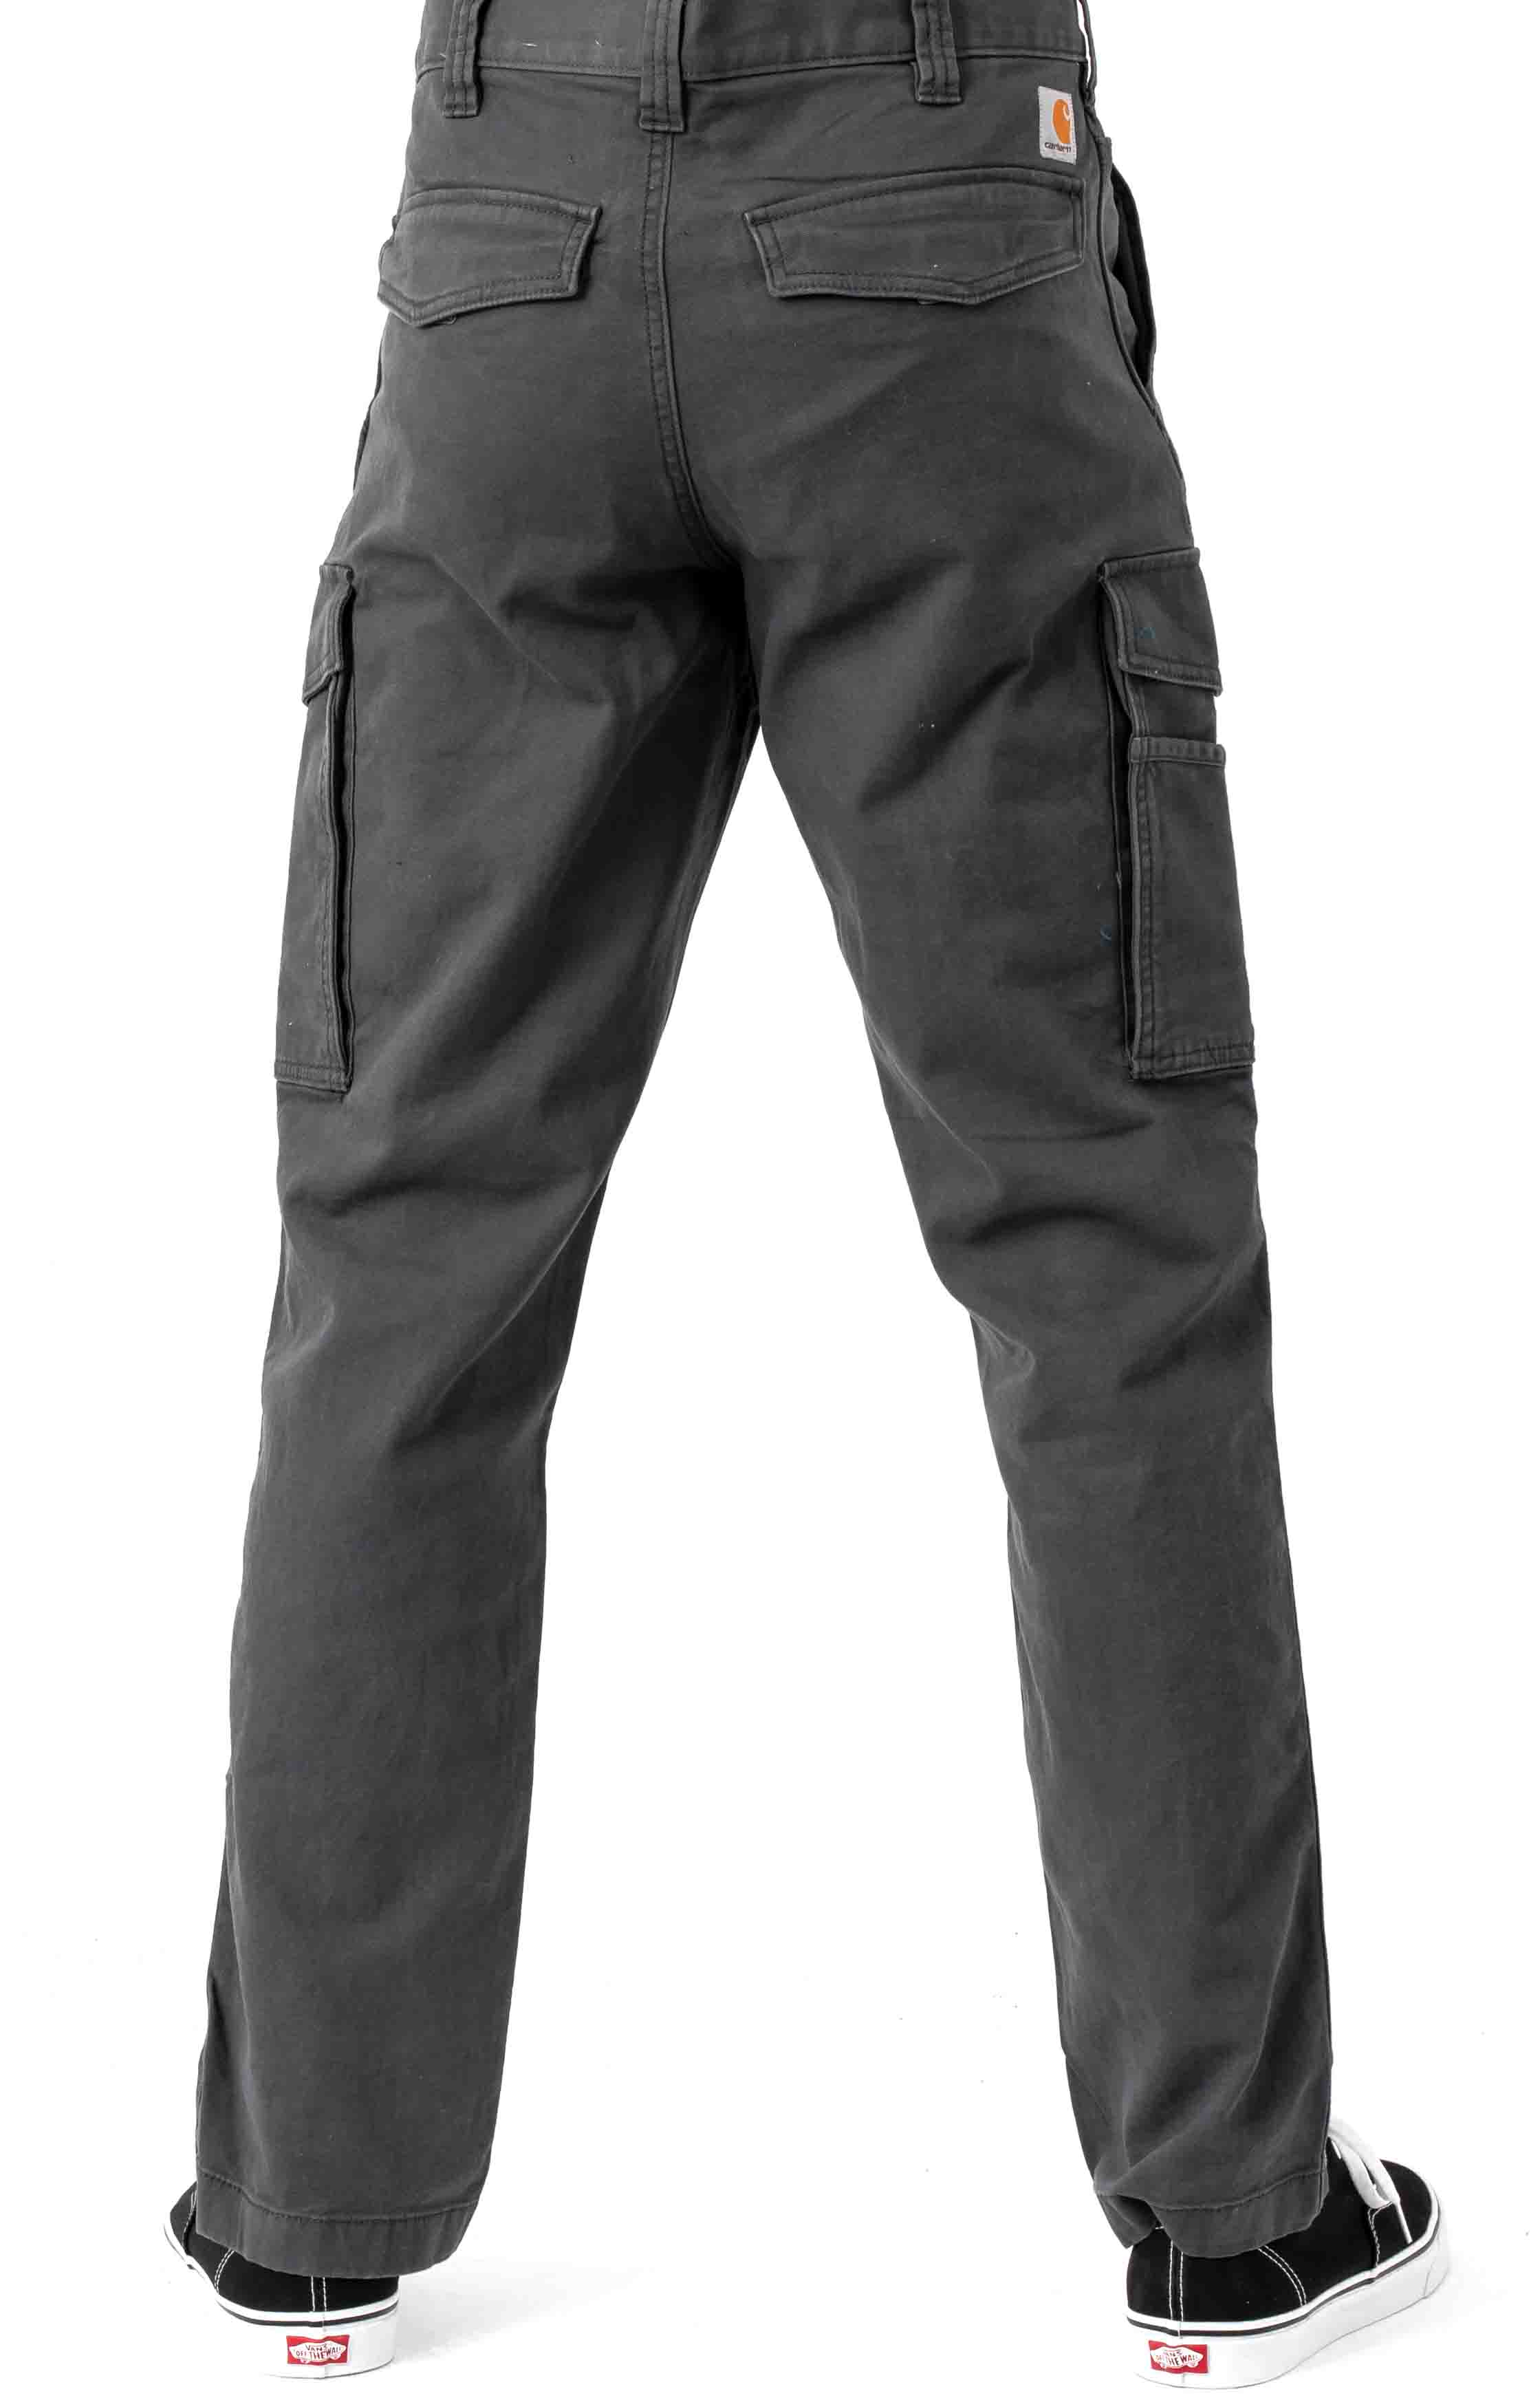 (103574) Rugged Flex Rigby Cargo Pant - Shadow 3